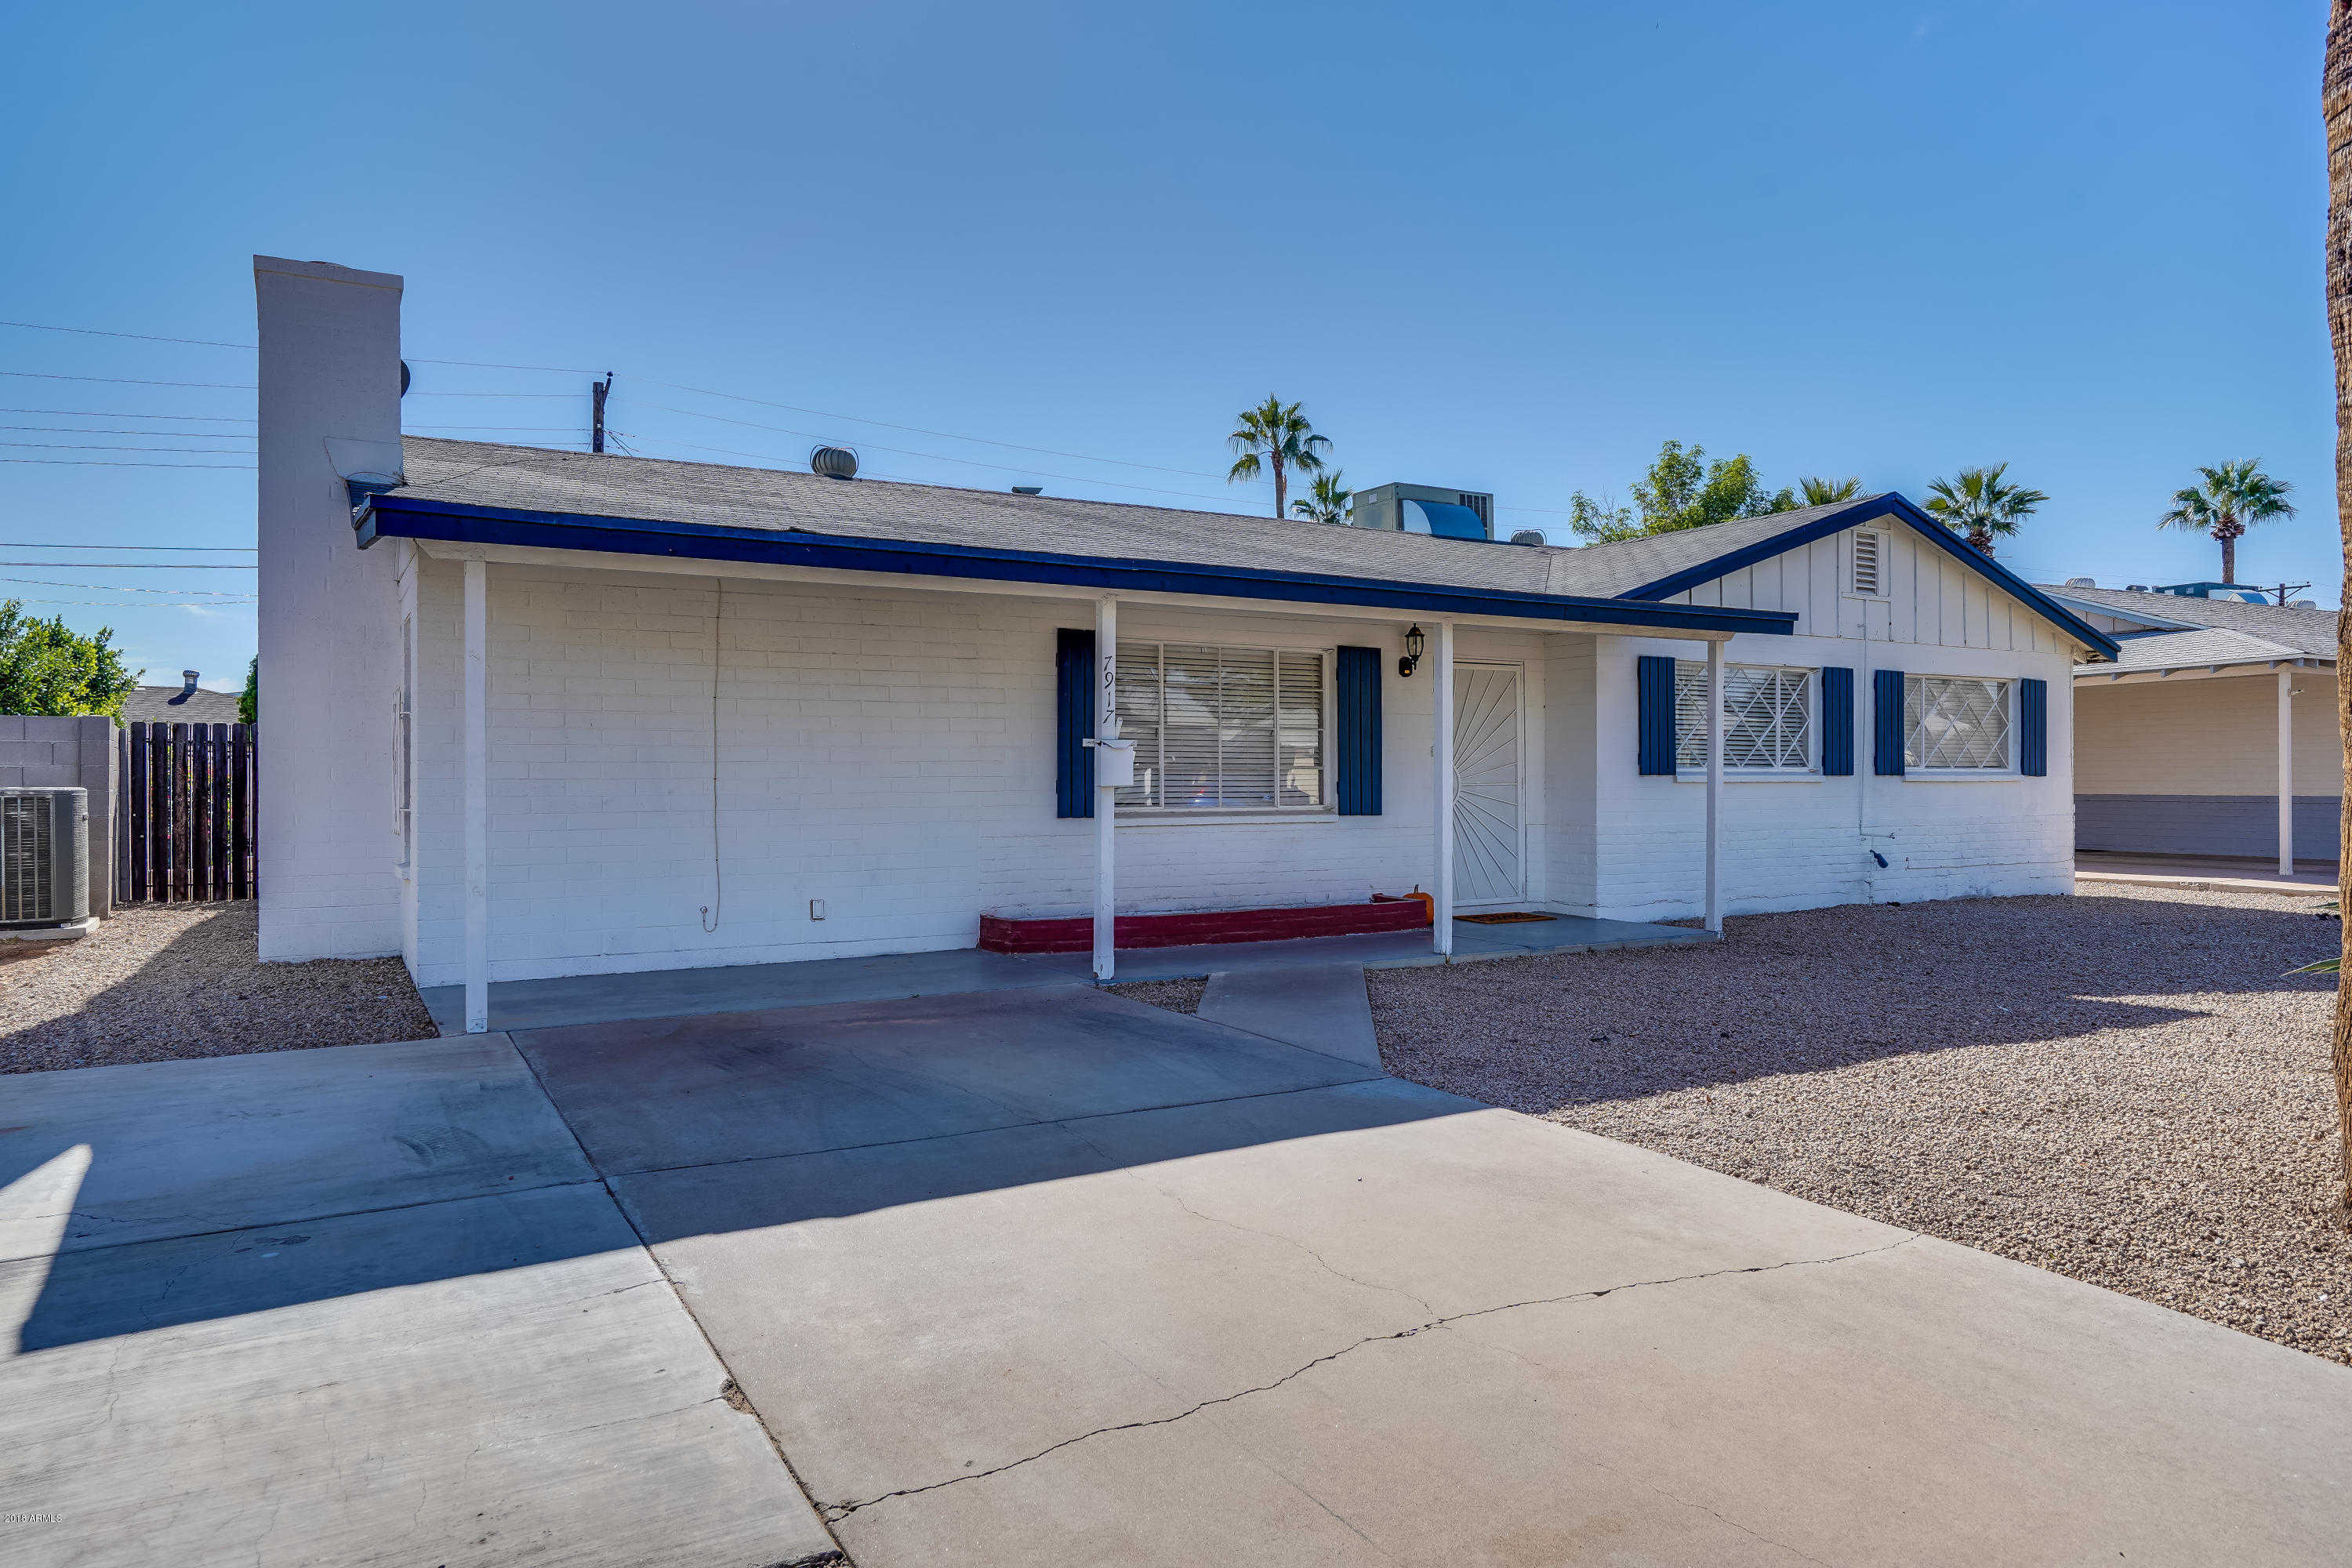 $359,900 - 4Br/2Ba - Home for Sale in Mcdowell Parkway, Scottsdale